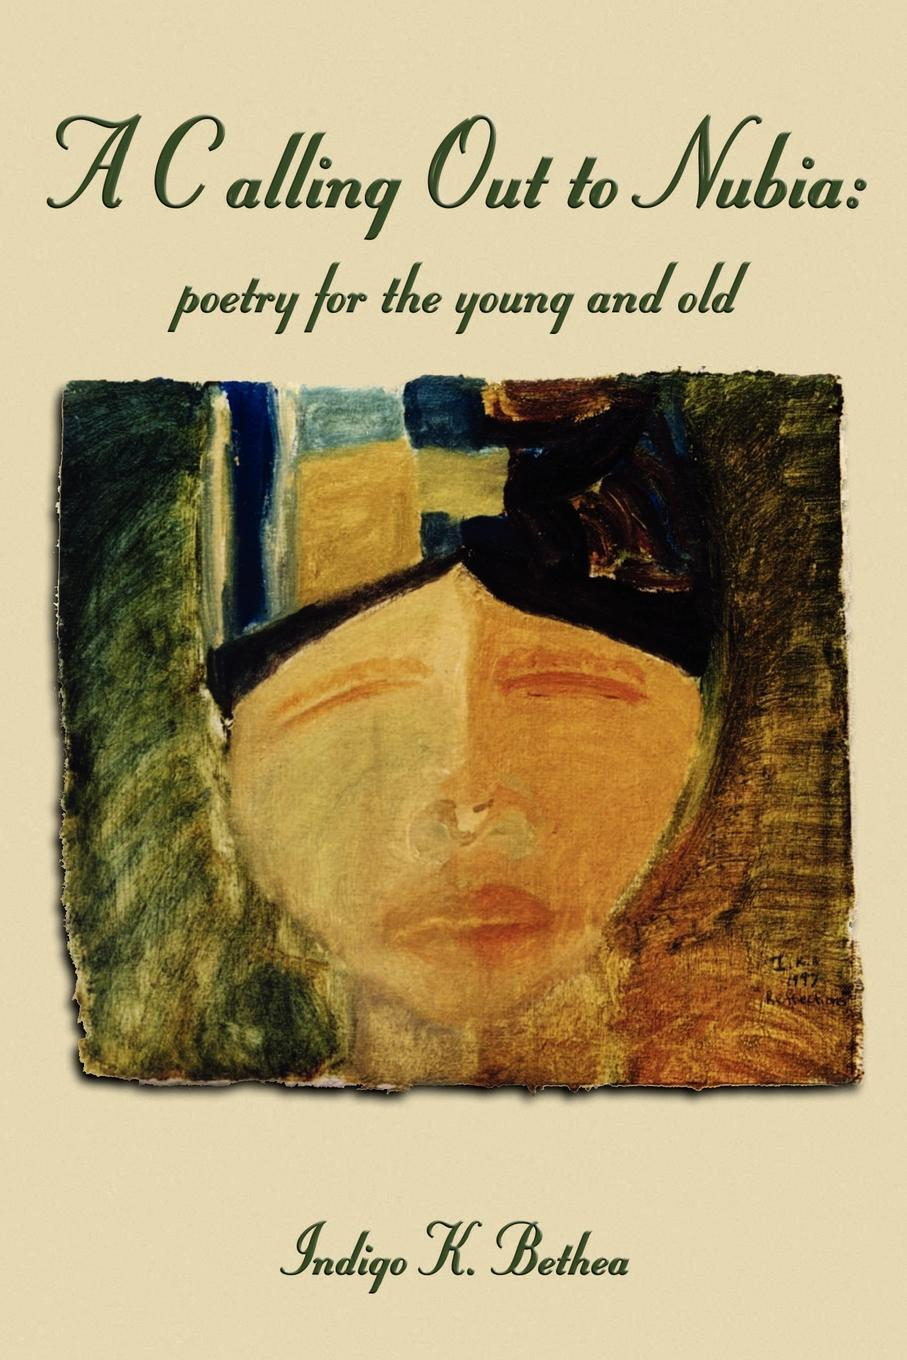 Книга A Calling Out to Nubia. : Poetry for the Young and Old. Indigo K. Bethea